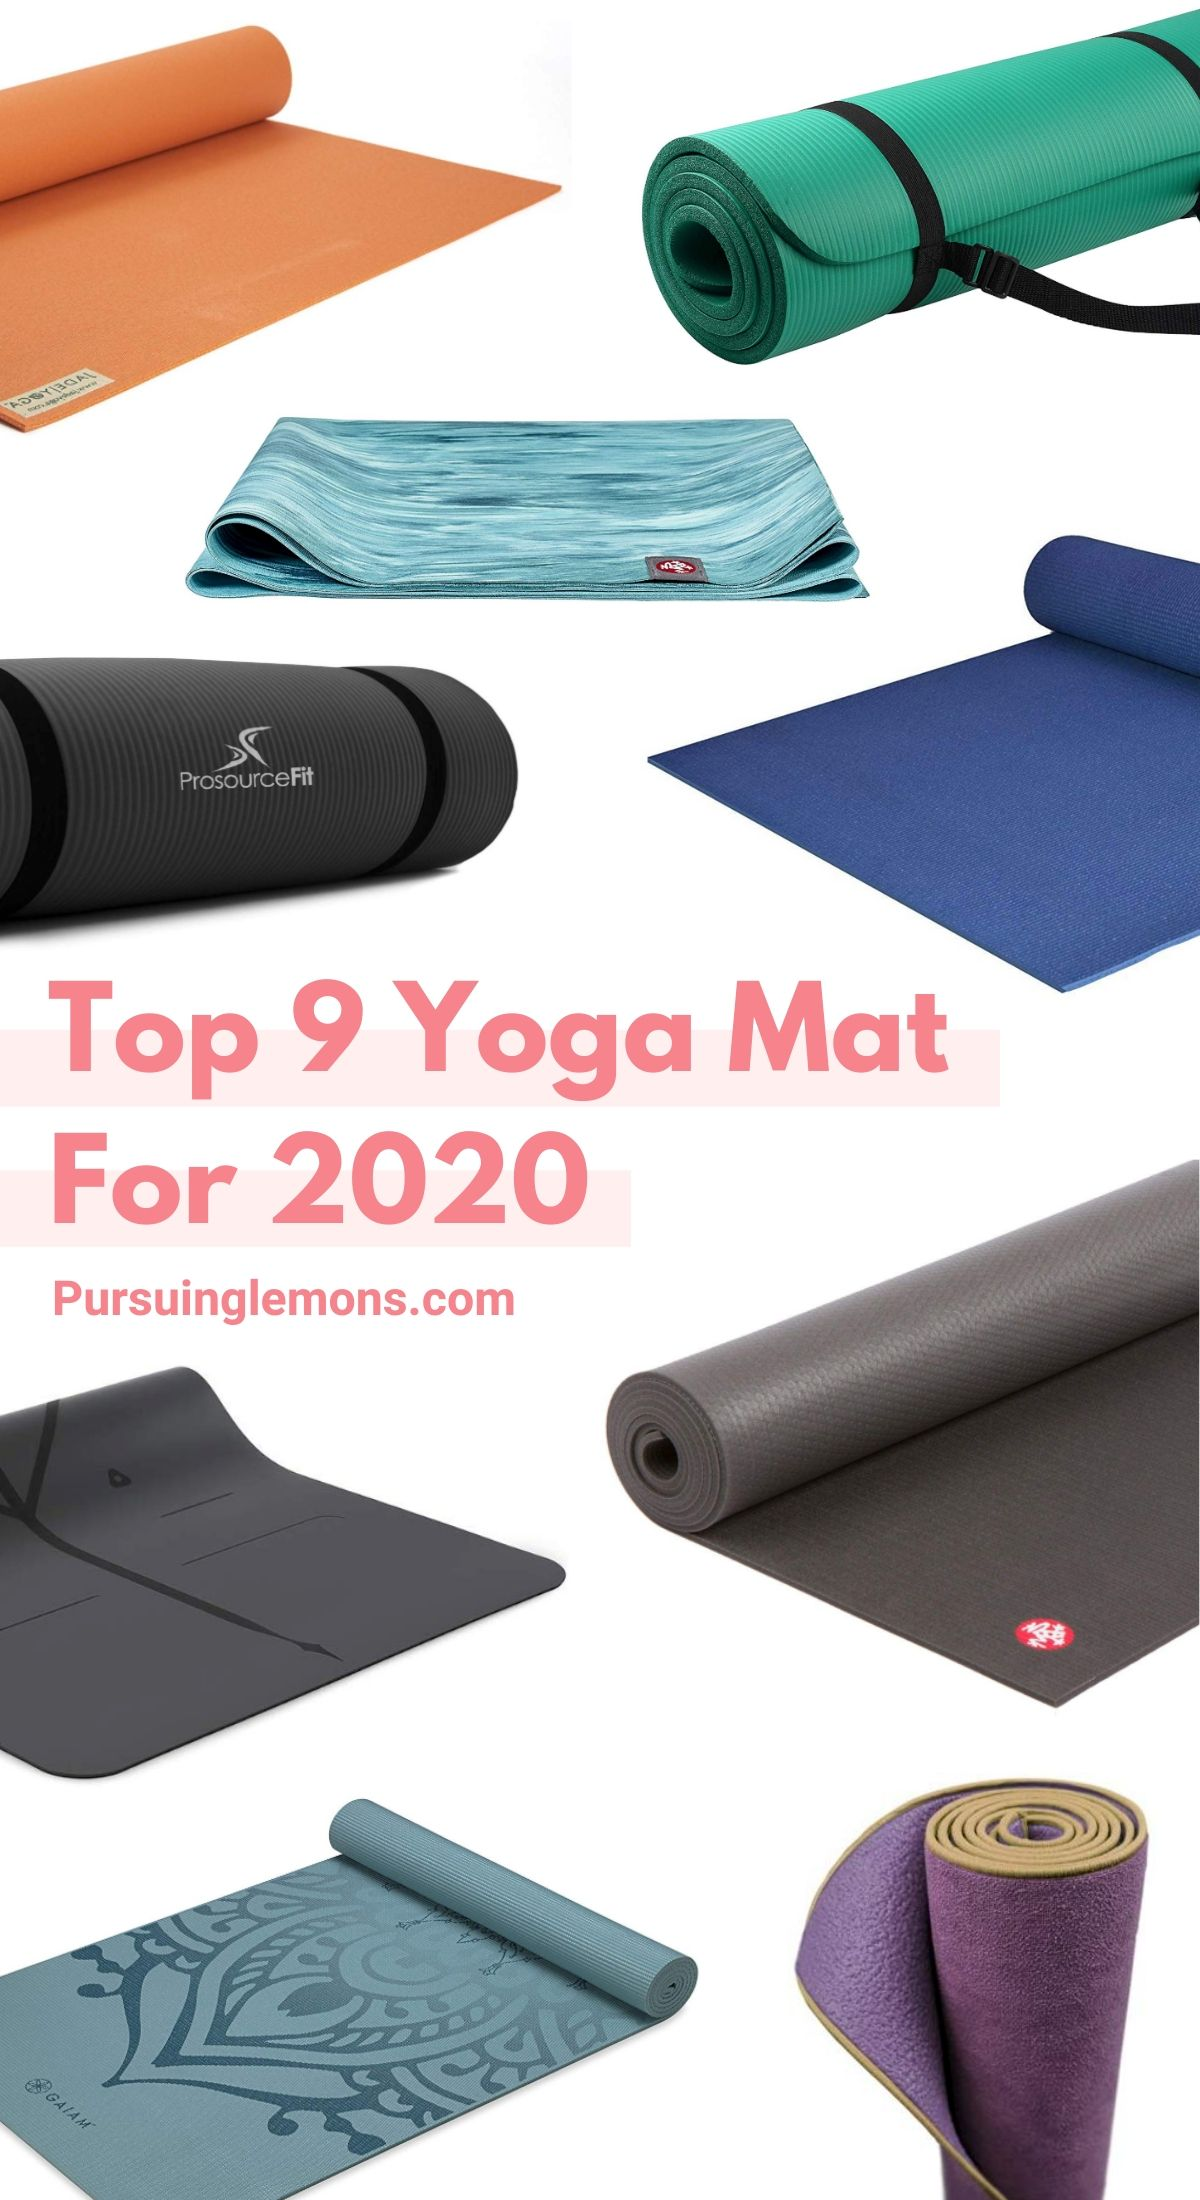 The 9 Best Yoga Mats That Will Fit Your Need | Not all yoga mats are created equal. There is the grippy mat, the thick yoga mat and some may be a thin yoga mat. They're just too many different yoga mats available. Our goal is to help you choose the perfect yoga mat! In our opinion, this is the 9 best yoga mats out there! #yoga #yogamat #mats #yogamats